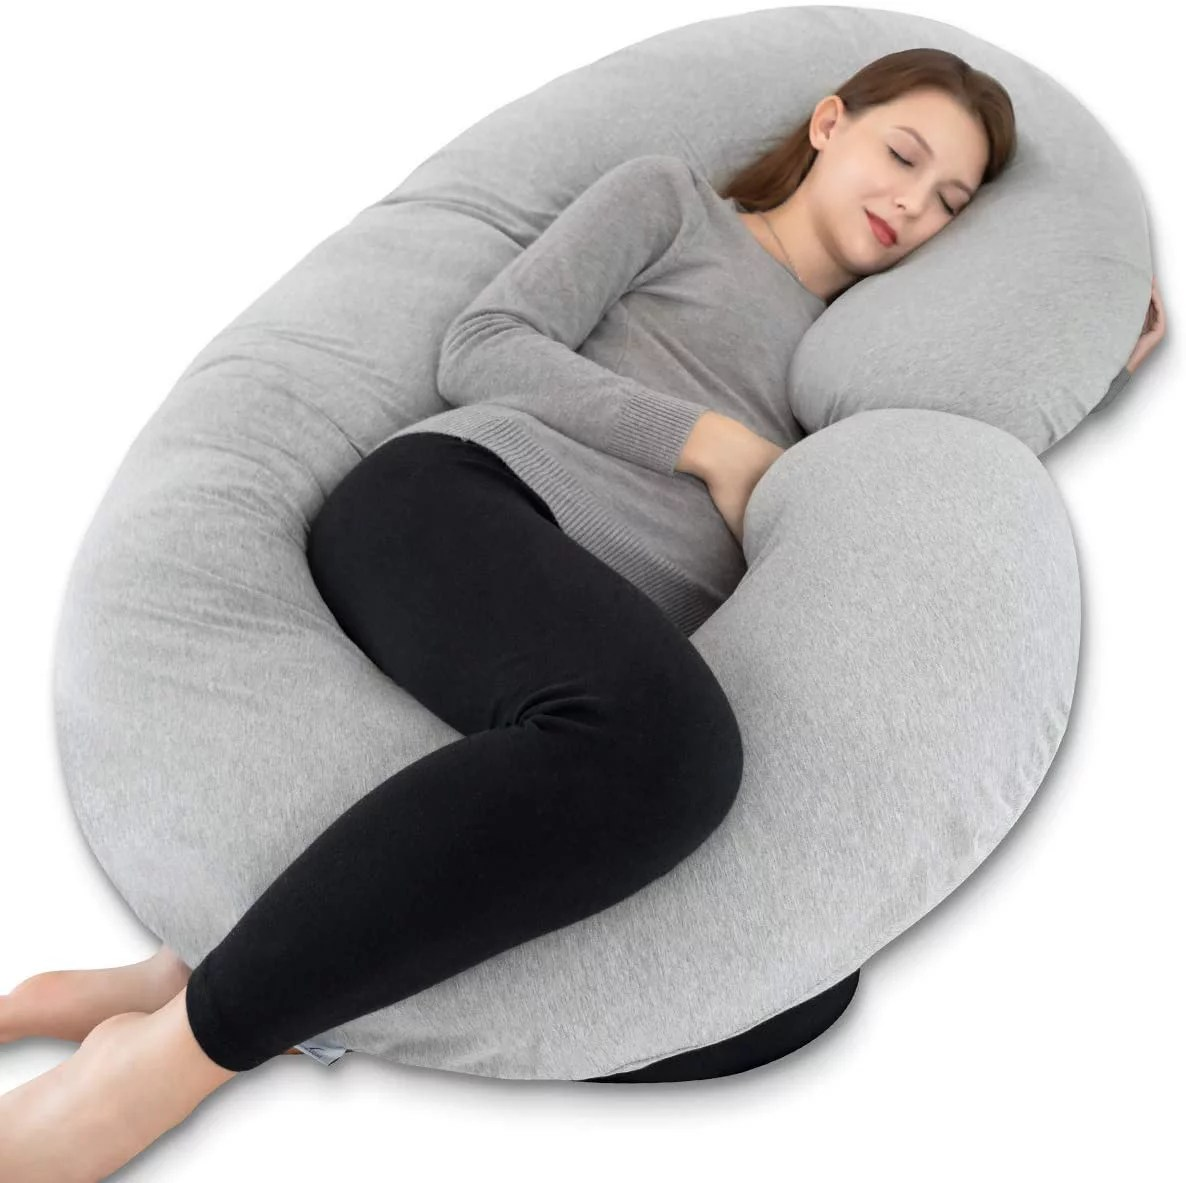 insen pregnancy pillow maternity body pillow for pregnant women c shaped pillow with jersey body pillow cover walmart com